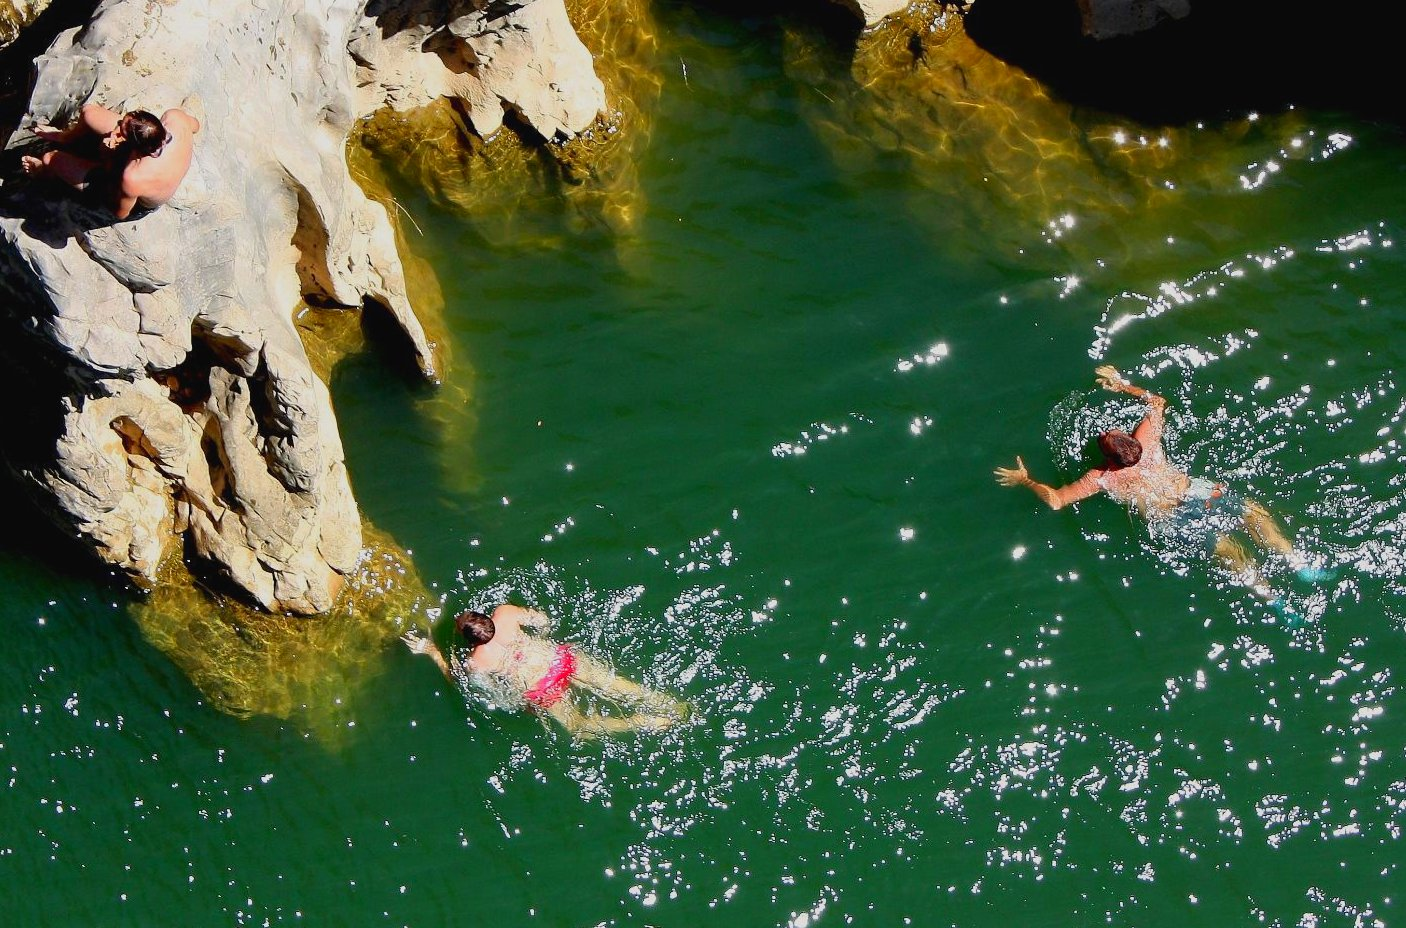 Mac's Musings: Death of a popular swimming hole